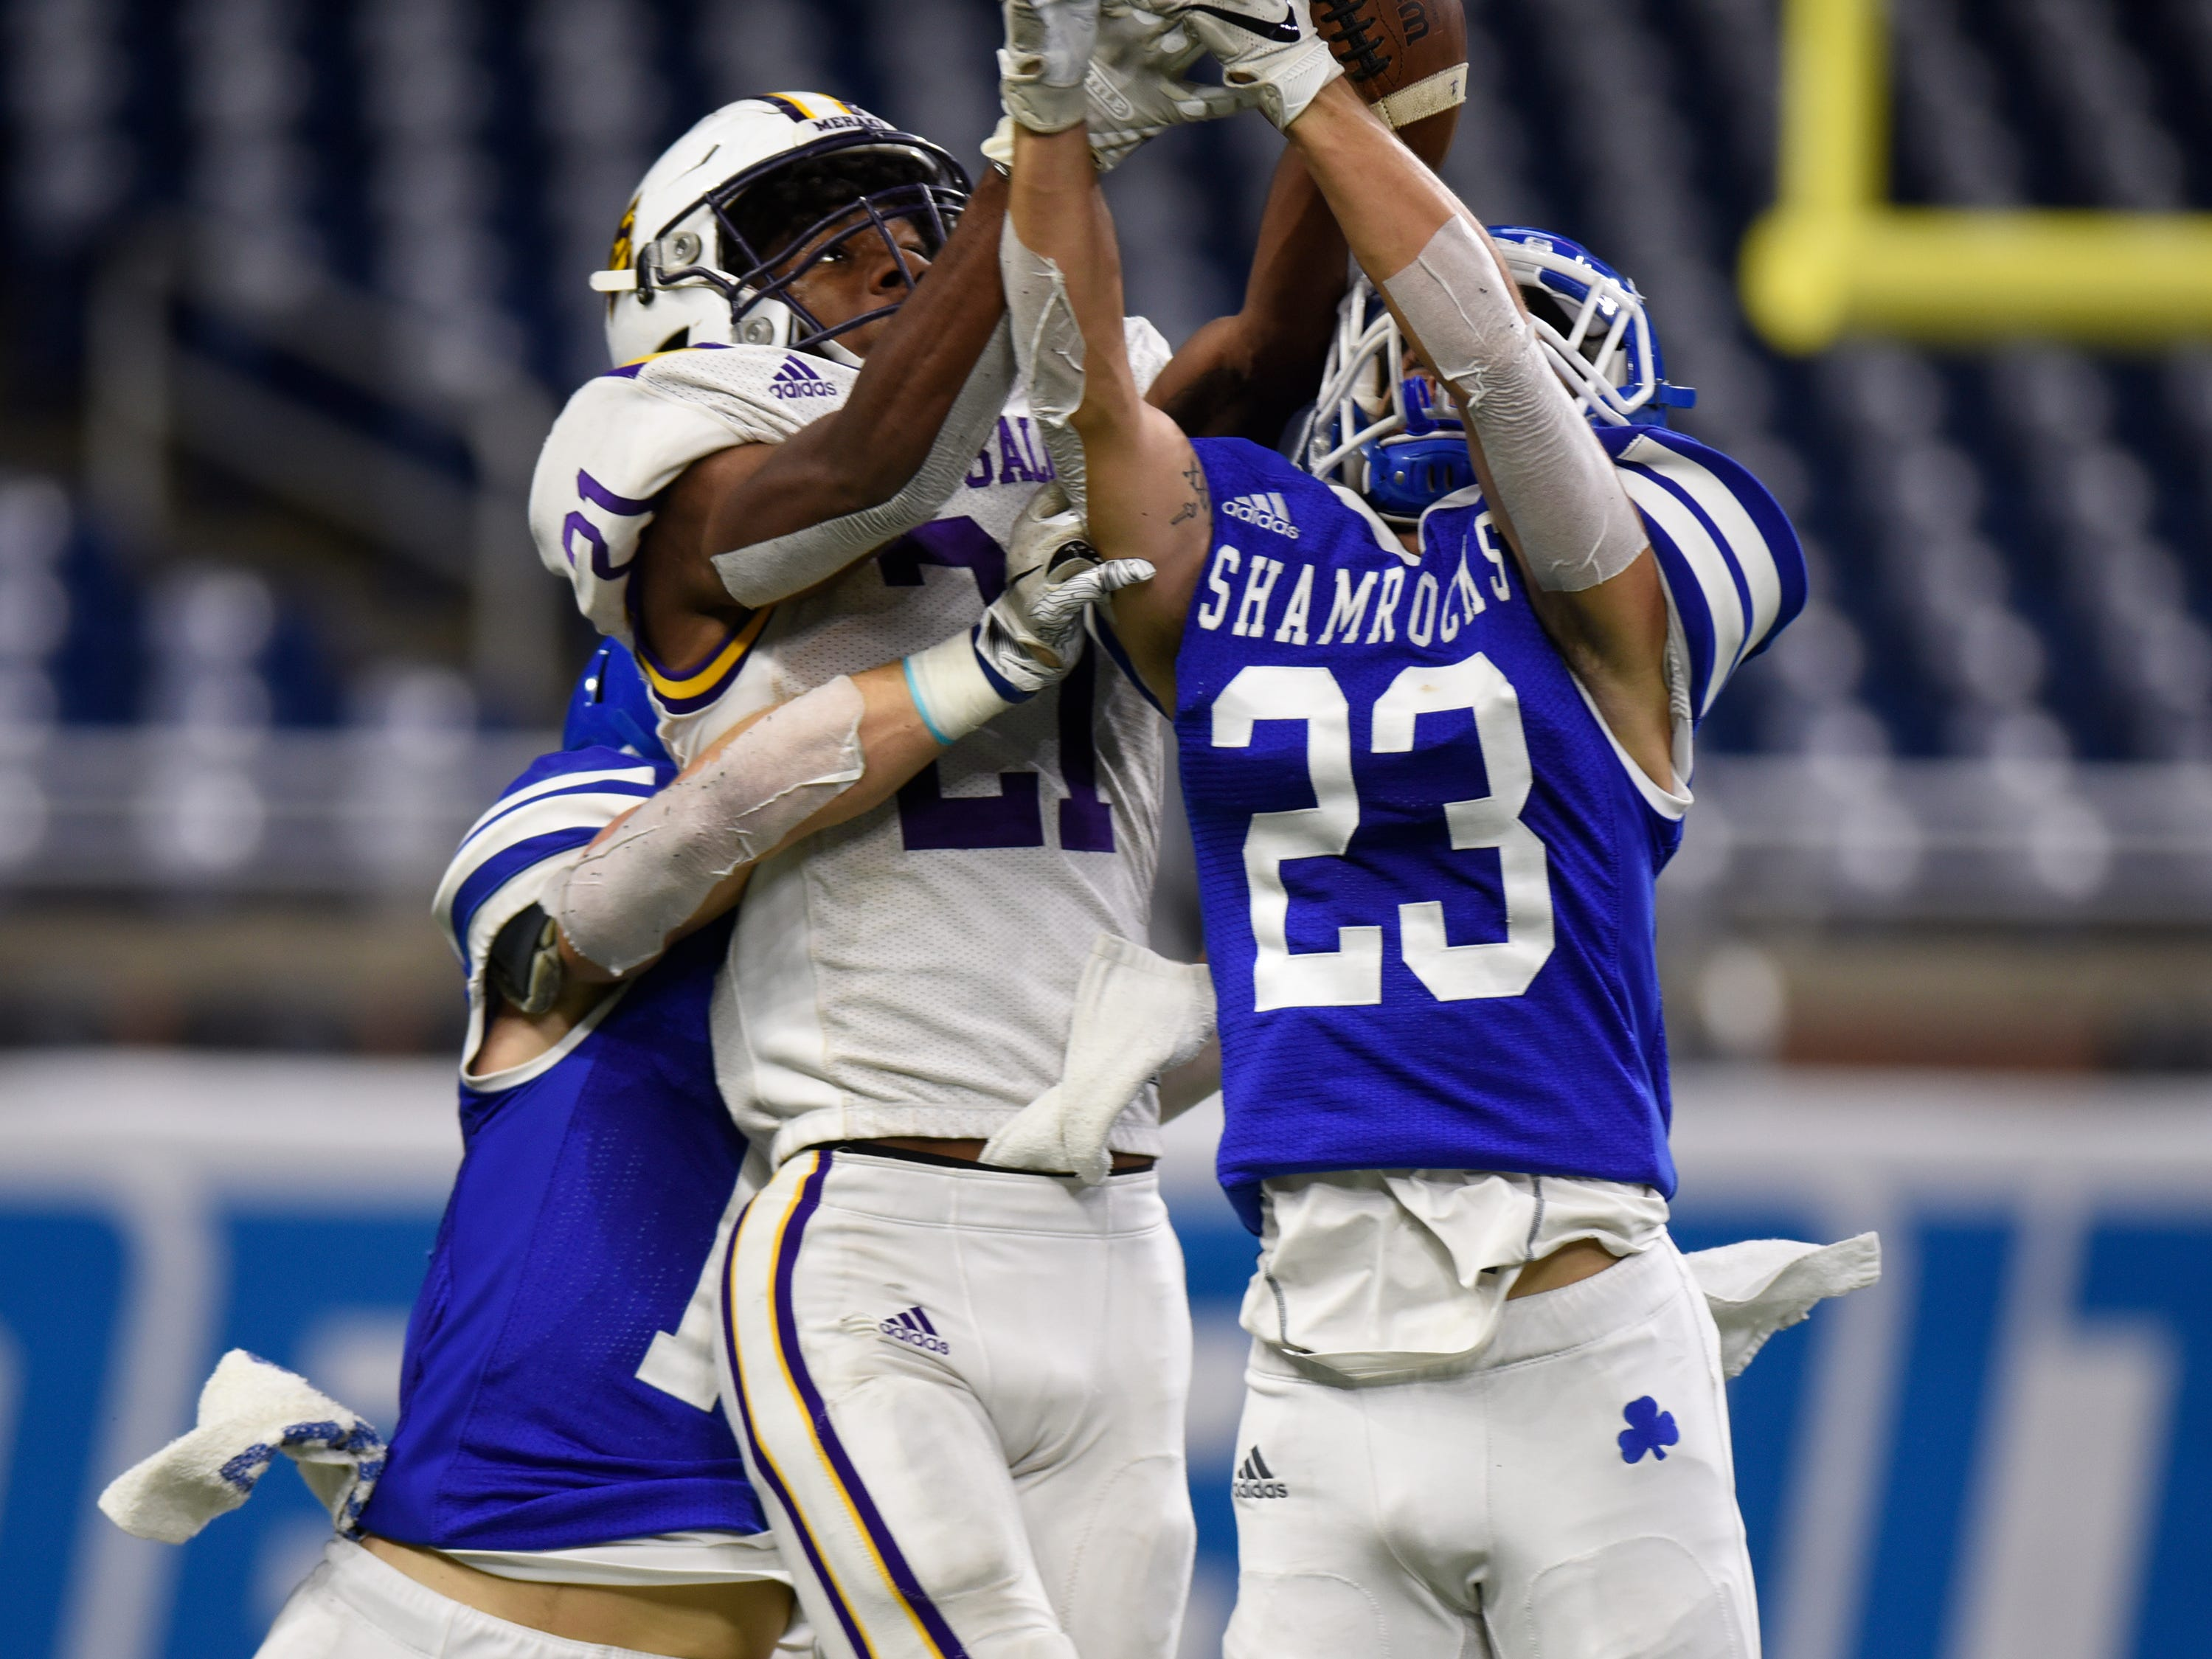 Warren De La Salle's Joshua DeBerry (21) breaks up a pass meant for Detroit Catholic Central's Parker Bohland (23) during Catholic League Prep Bowl AB Division championship game at Ford Field Oct. 20, 2018.